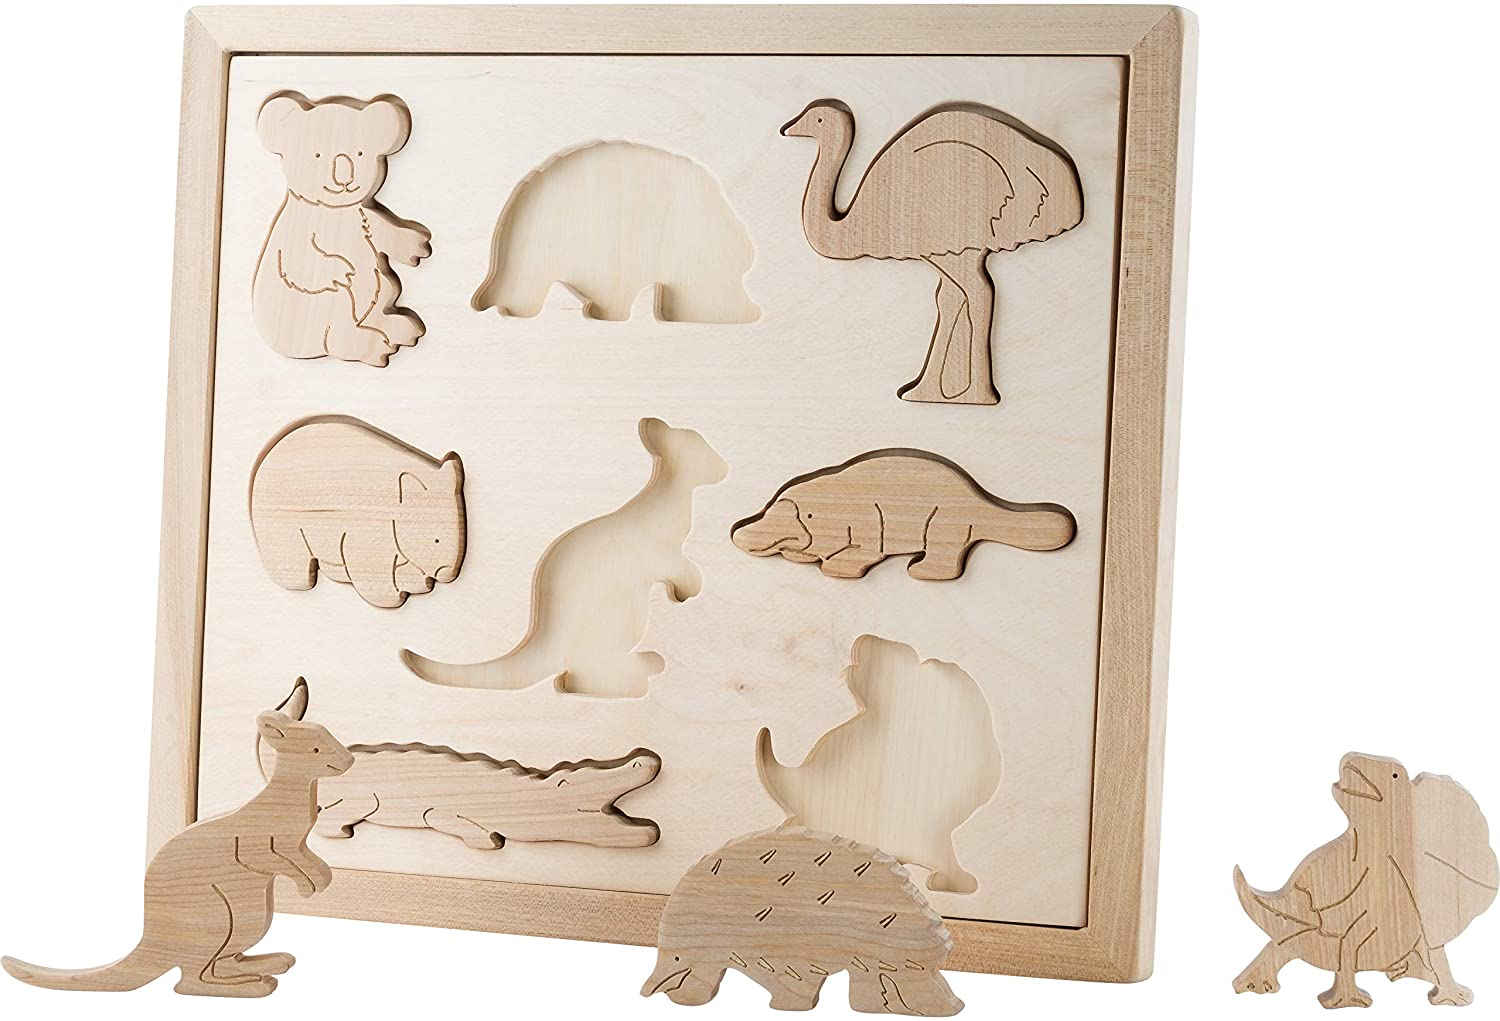 Animals Australia. The World Around Us Series.Wooden Toys Wooden Puzzle Set KubiDubi KUBI Dubi Smart Toys Wood Toys